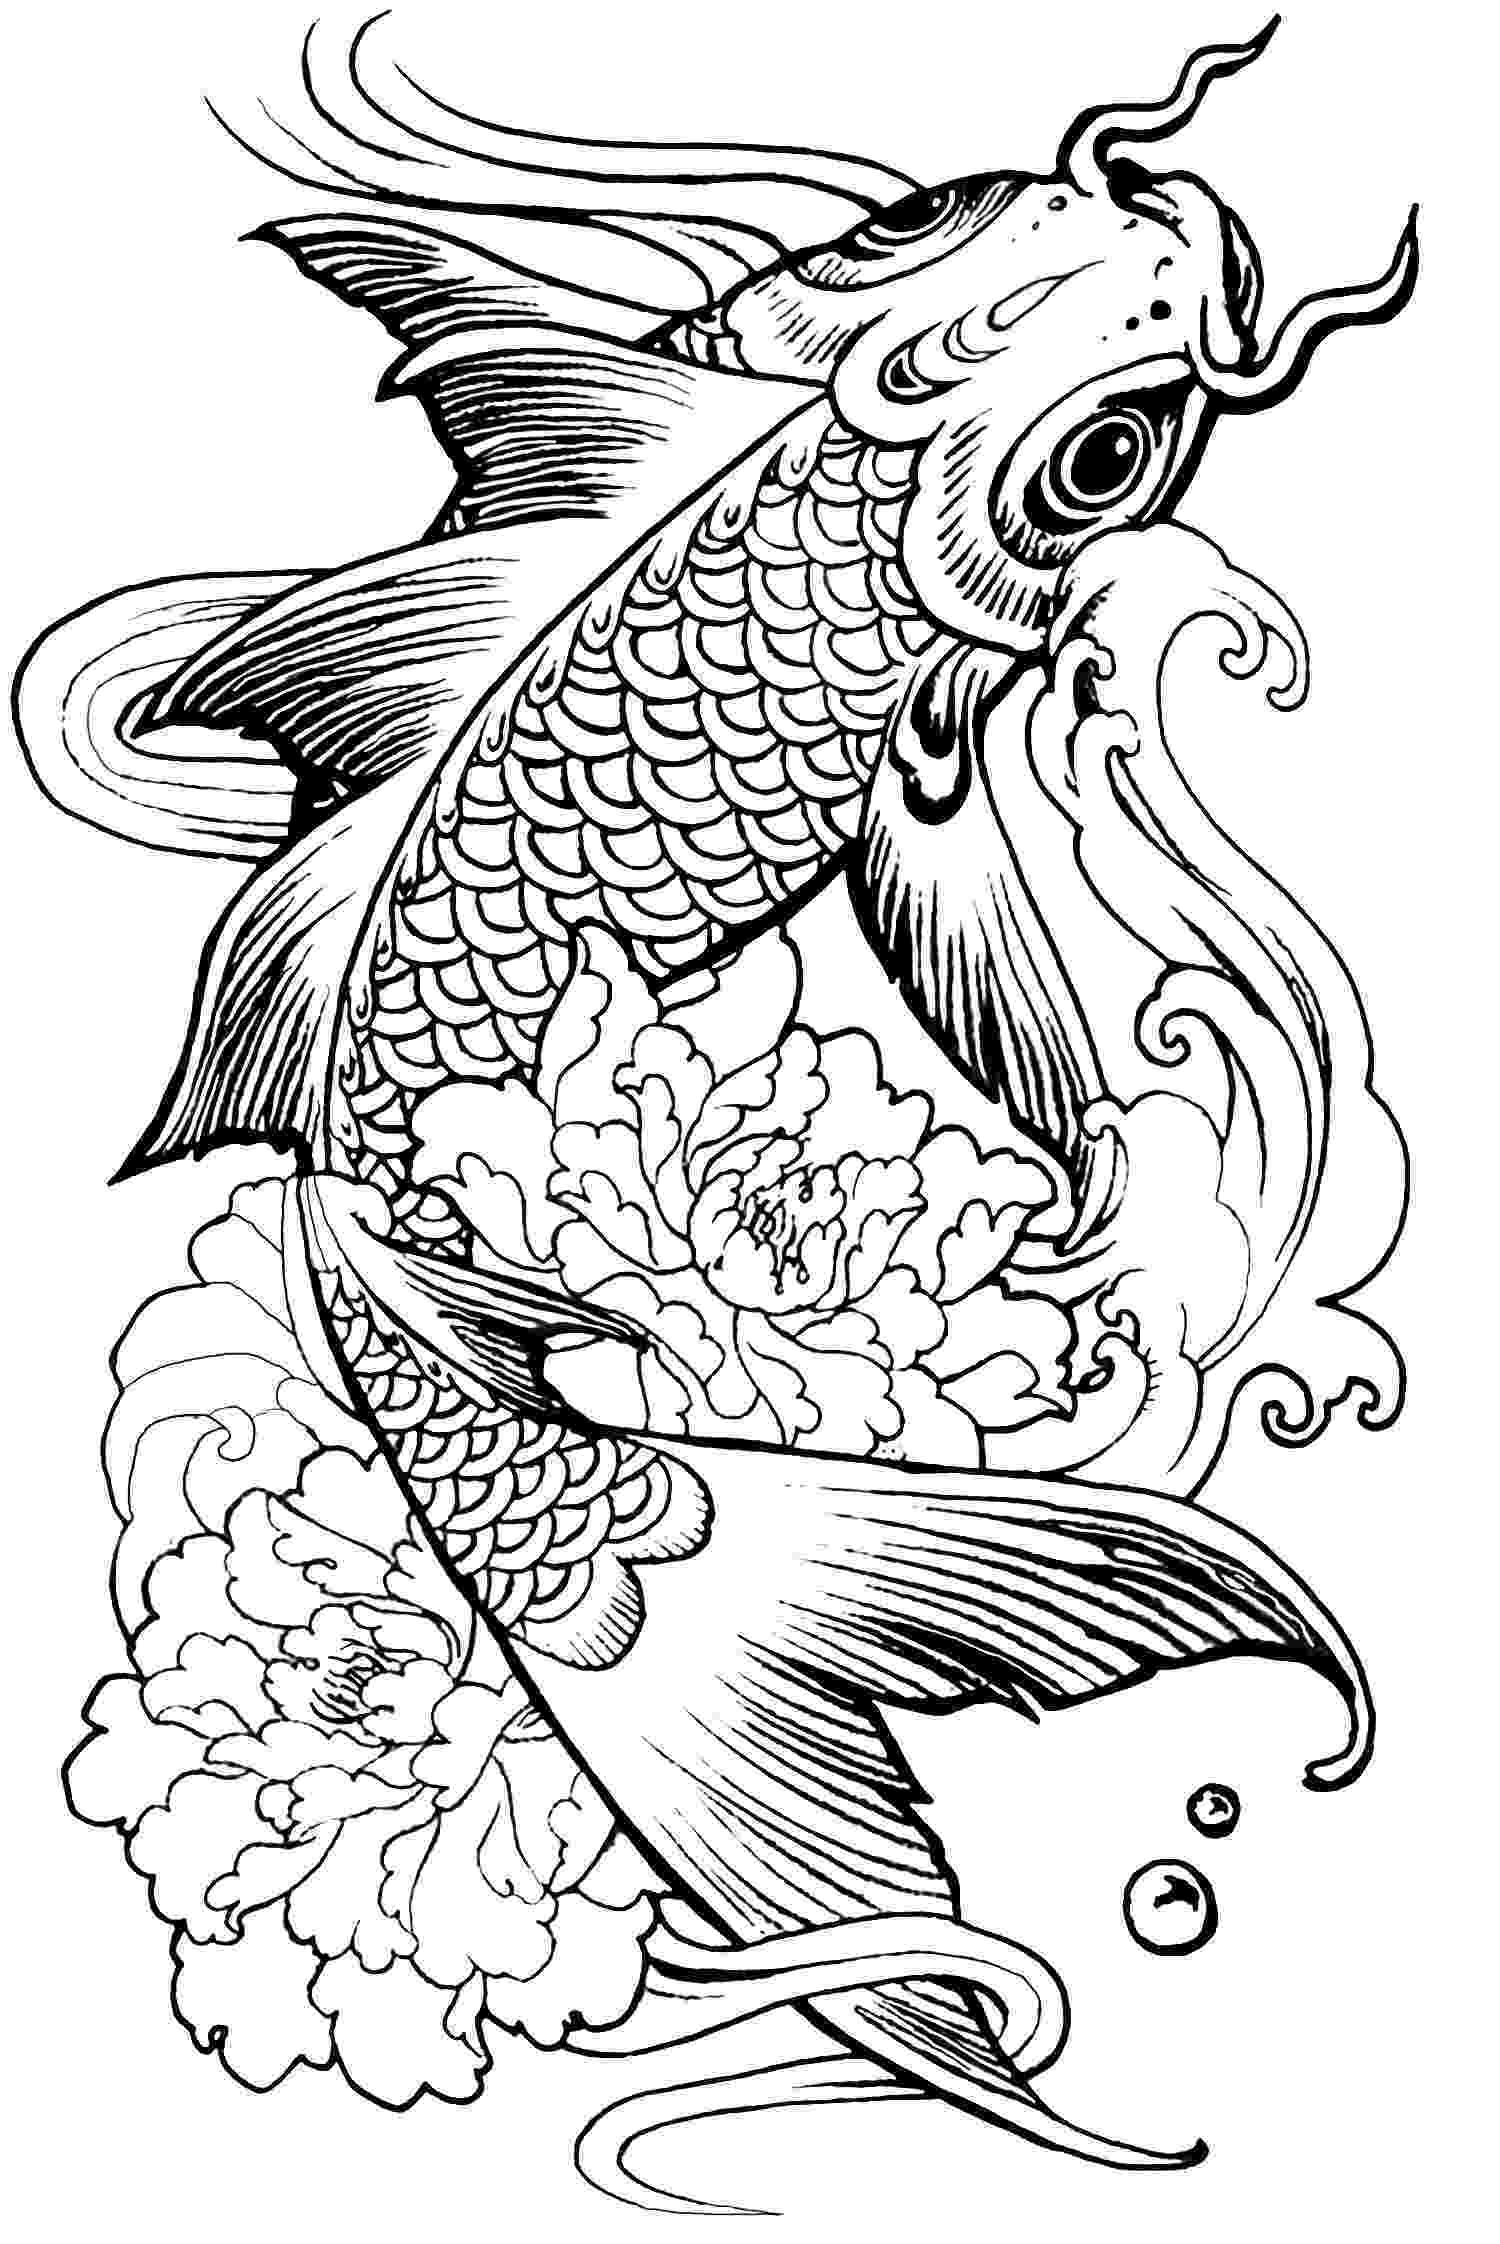 fish coloring pages for adults ausmalen kostenlose mandalas zum ausdrucken malvorlage for pages fish coloring adults